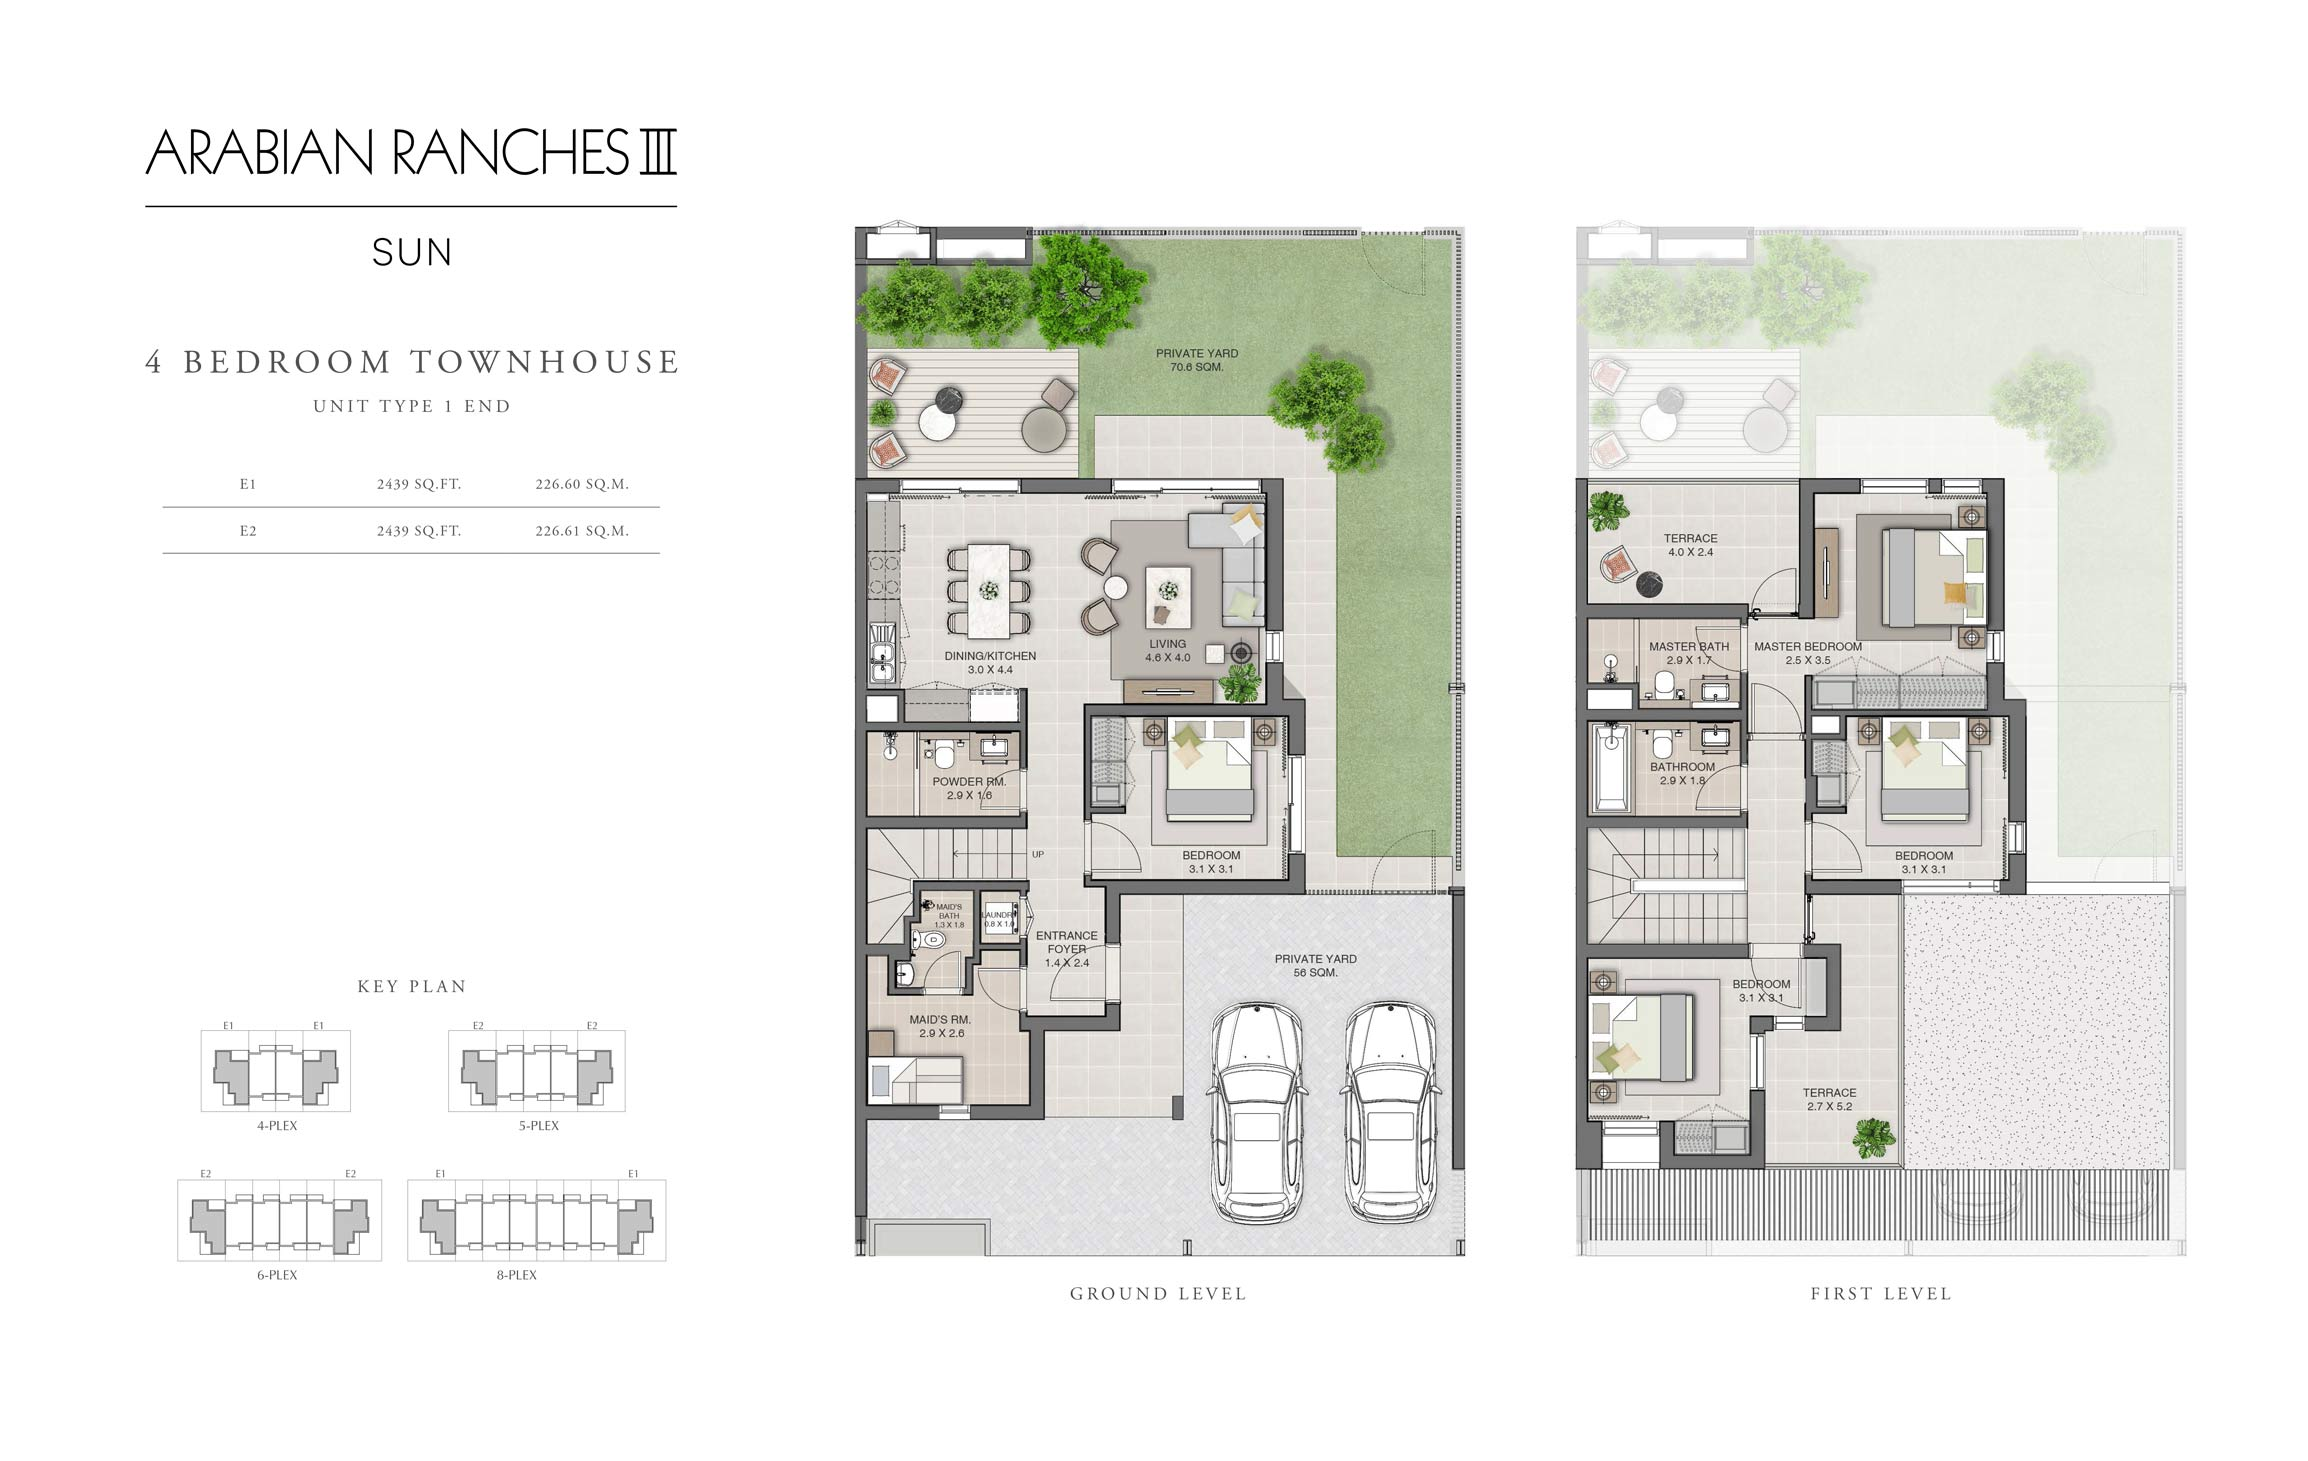 4 Bedroom Unit Type 1 End Size 2439 sq ft